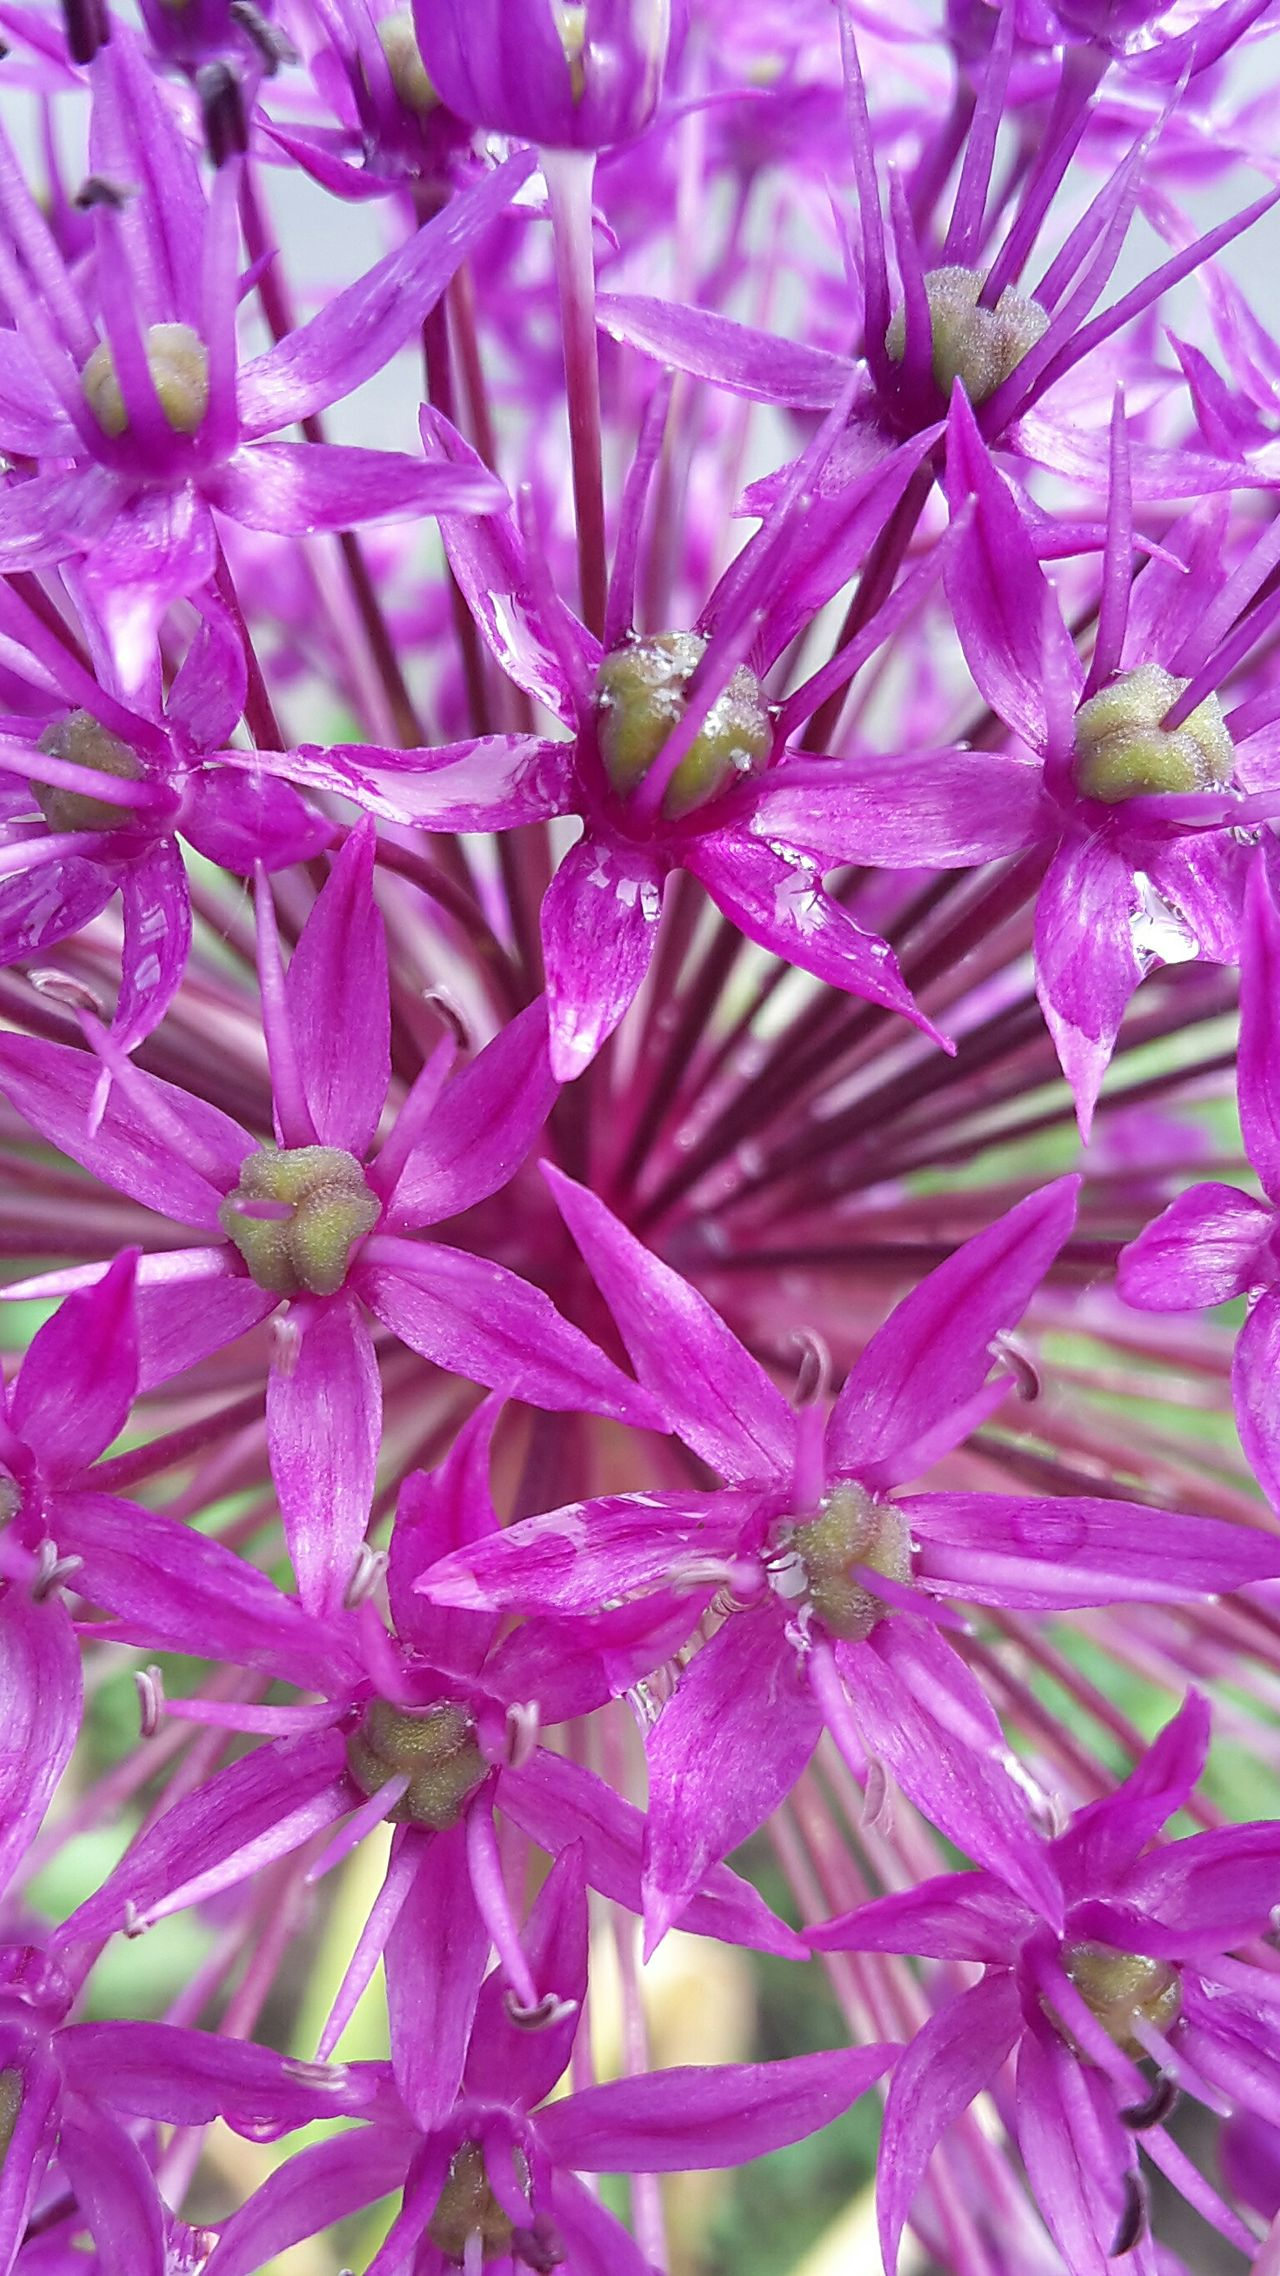 Flower Purple Beauty In Nature Nature Plant Growth Pink Color Freshness No People Fragility Flower Head Springtime Day Outdoors Close-up Allium Allium Flower Allium Giganteum Blume Lila Frühling Endlich Frühling